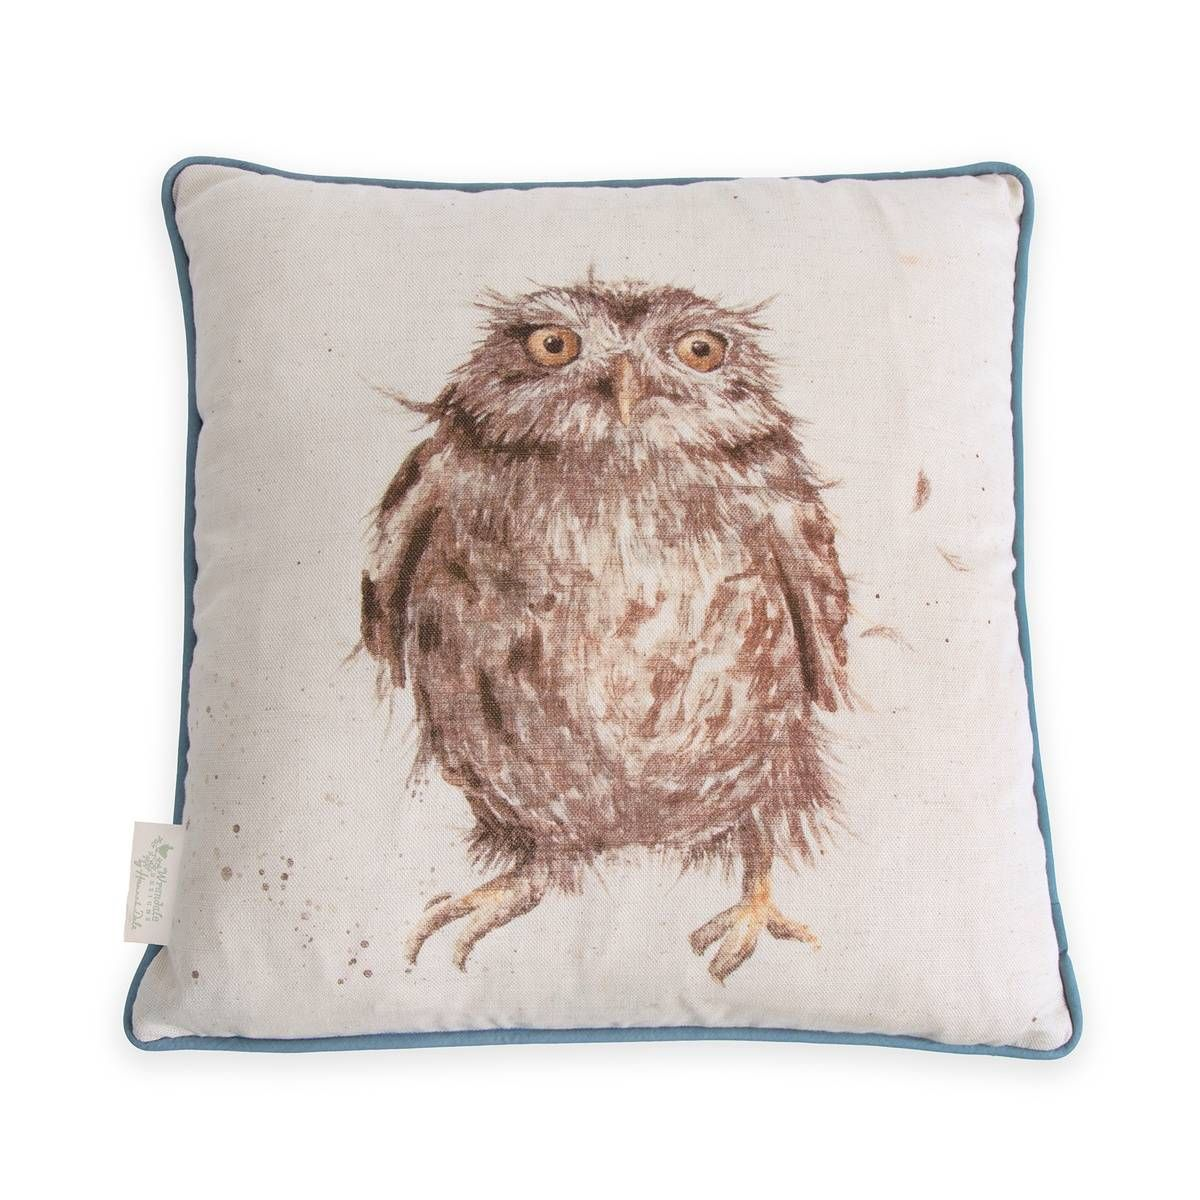 Wrendale Owl Cushion, ideal prezzi for Mother\'s Day - we all ...